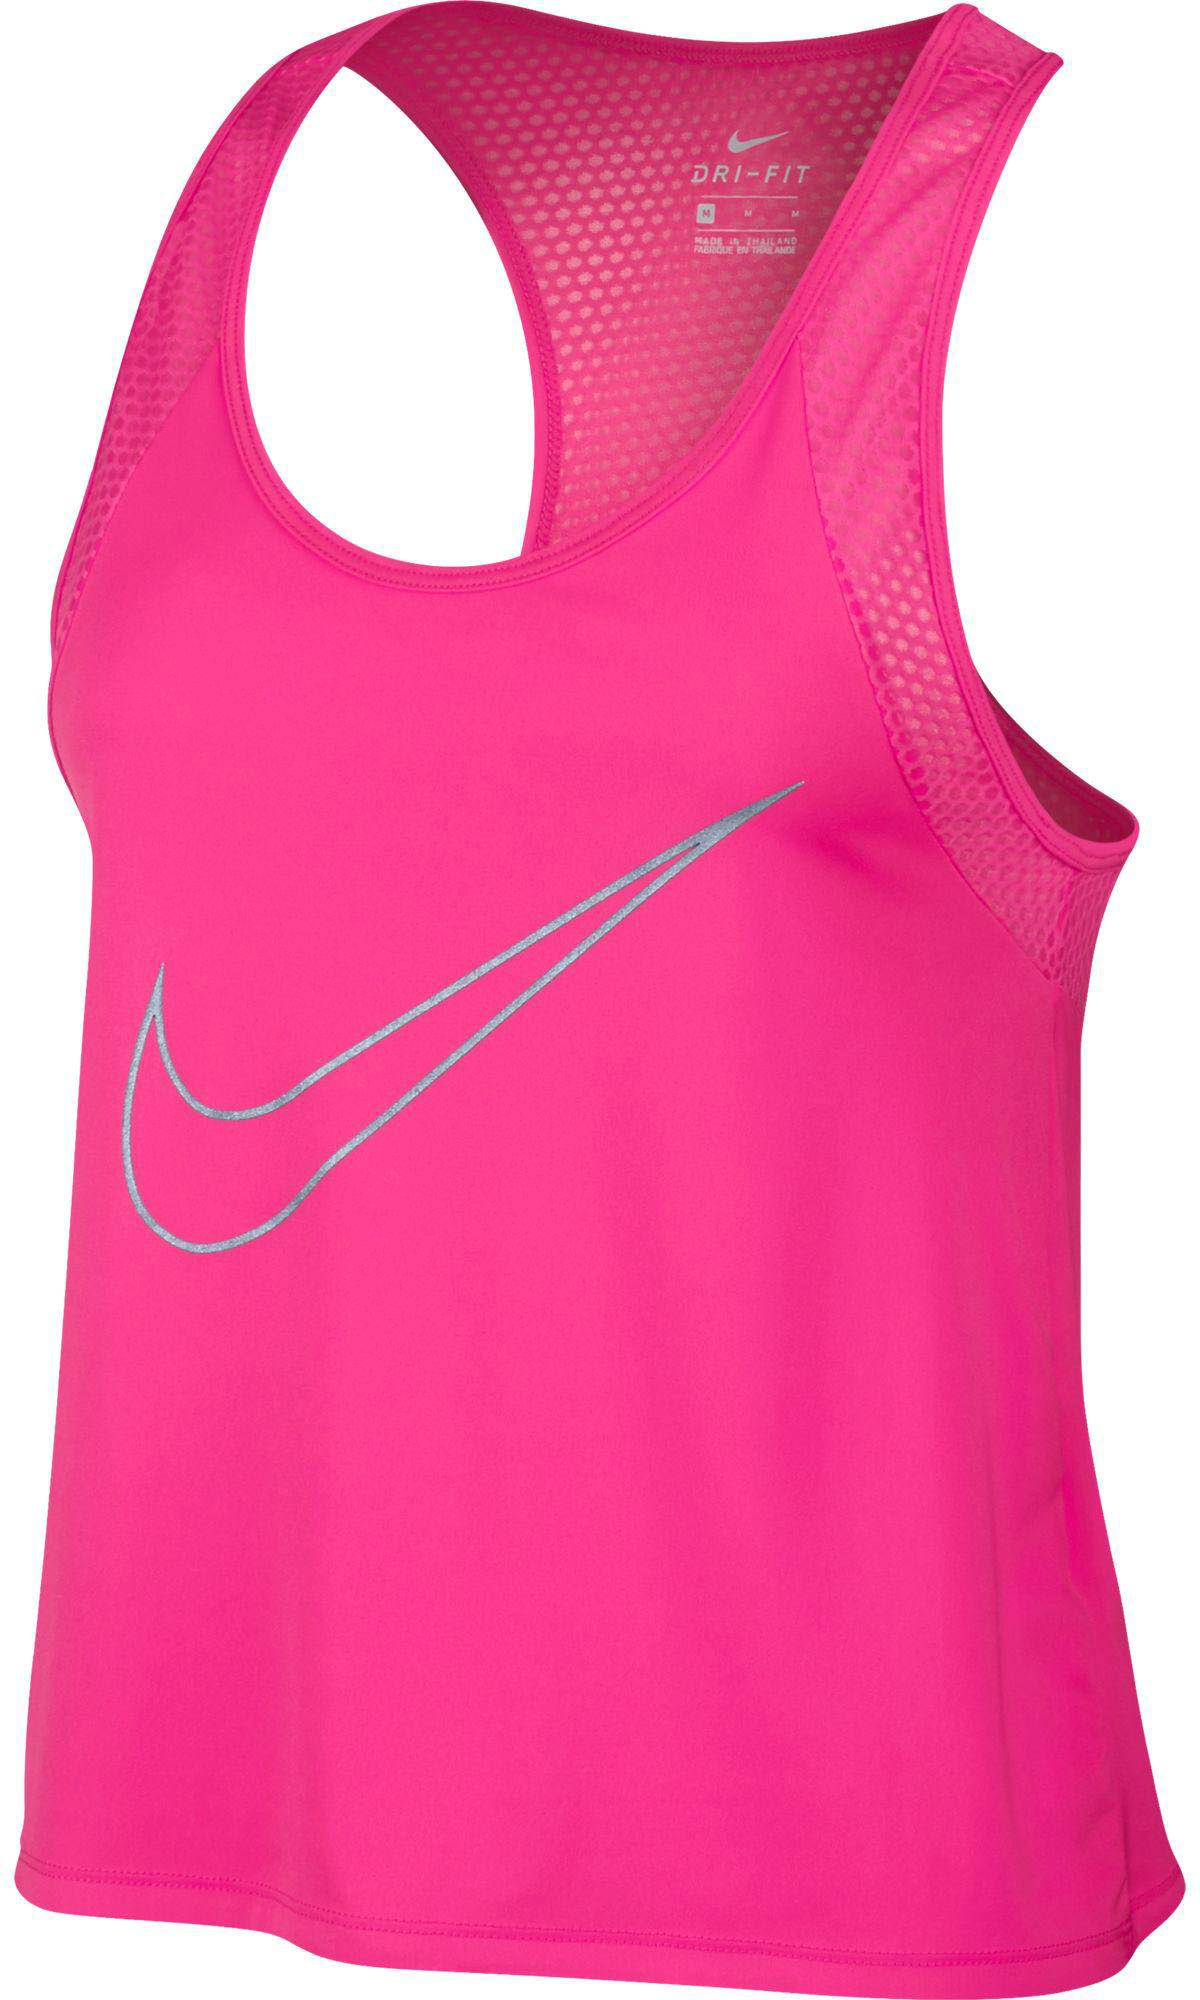 Lyst - Nike Dry Run Fast Running Tank Top in Pink 5aaad8255